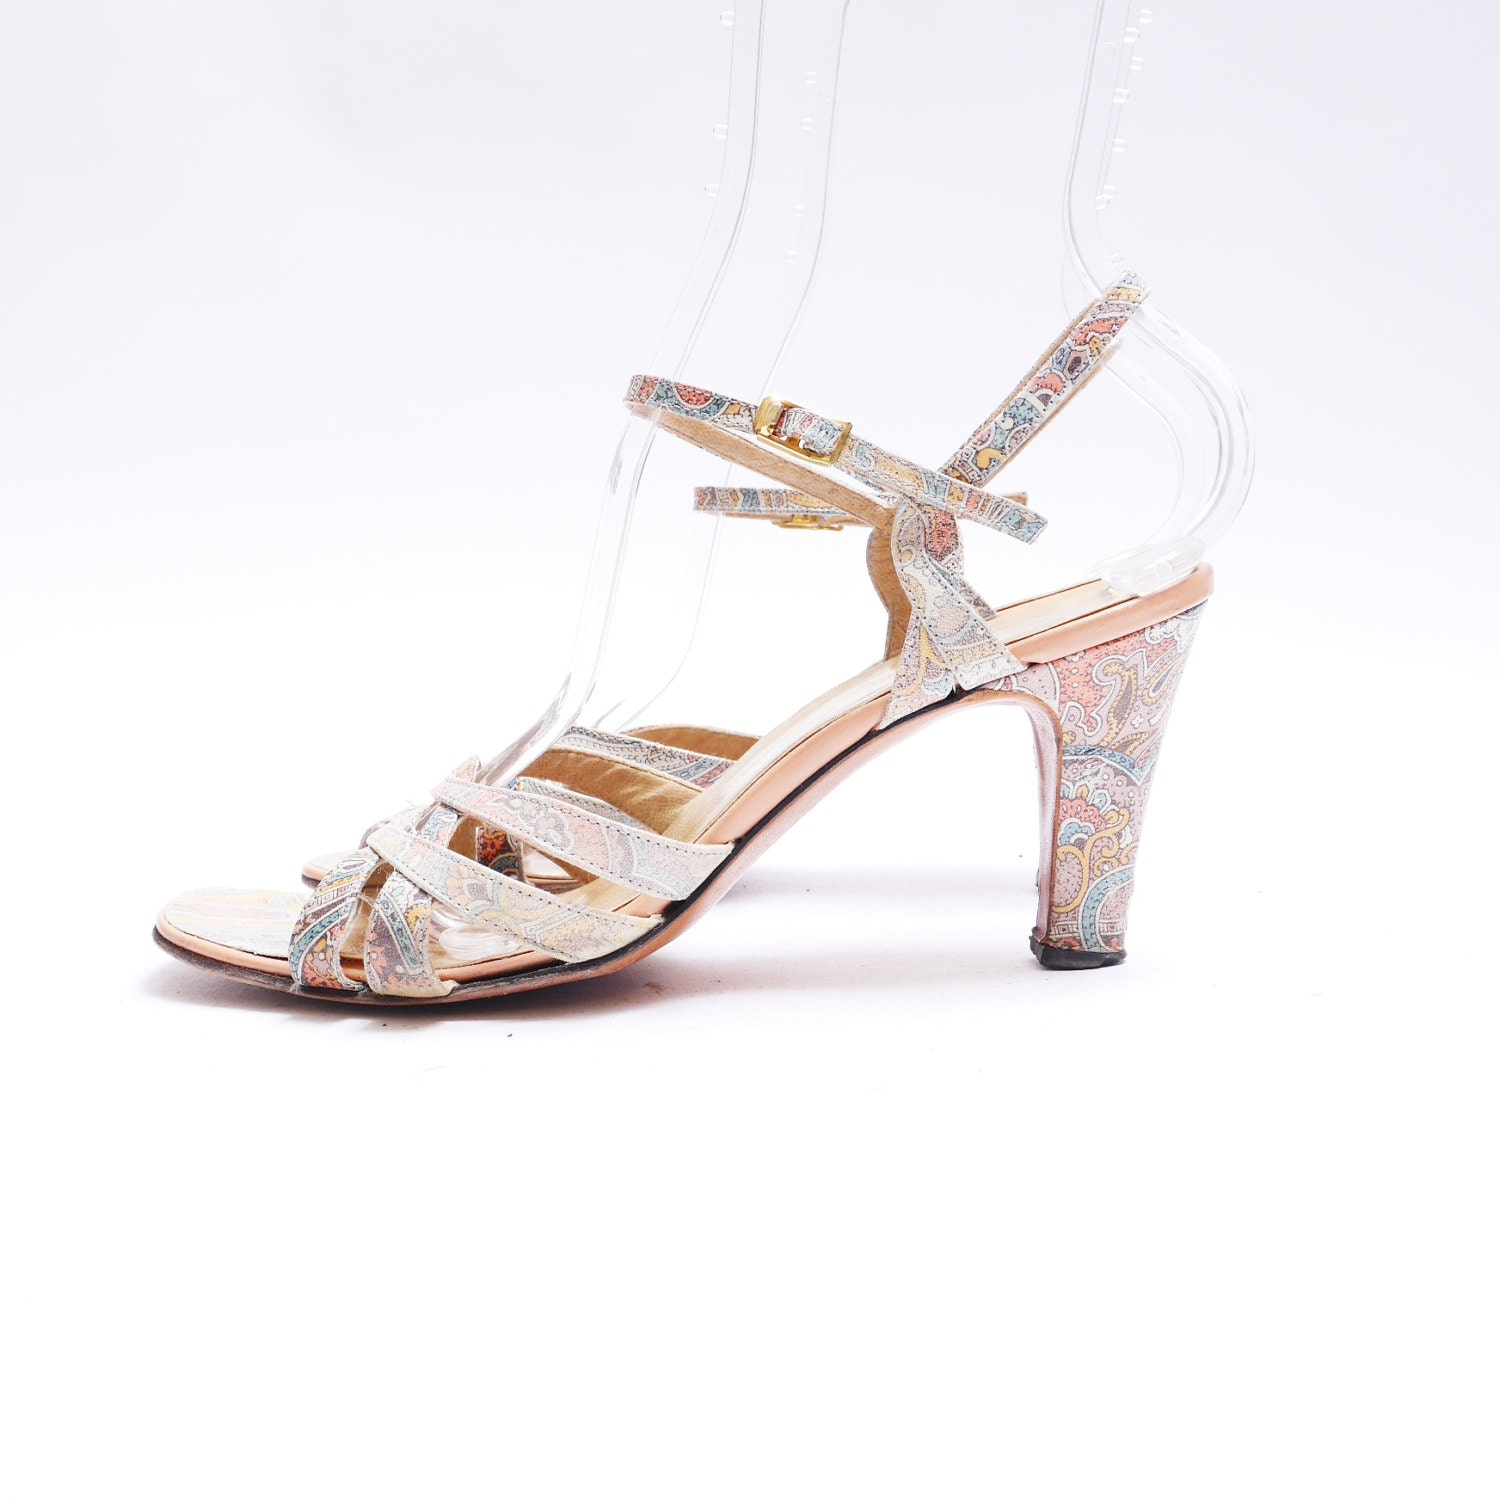 b1a9a36f77d 60s 70s Pale Paisley Print Slingback Pumps    Strappy Leather